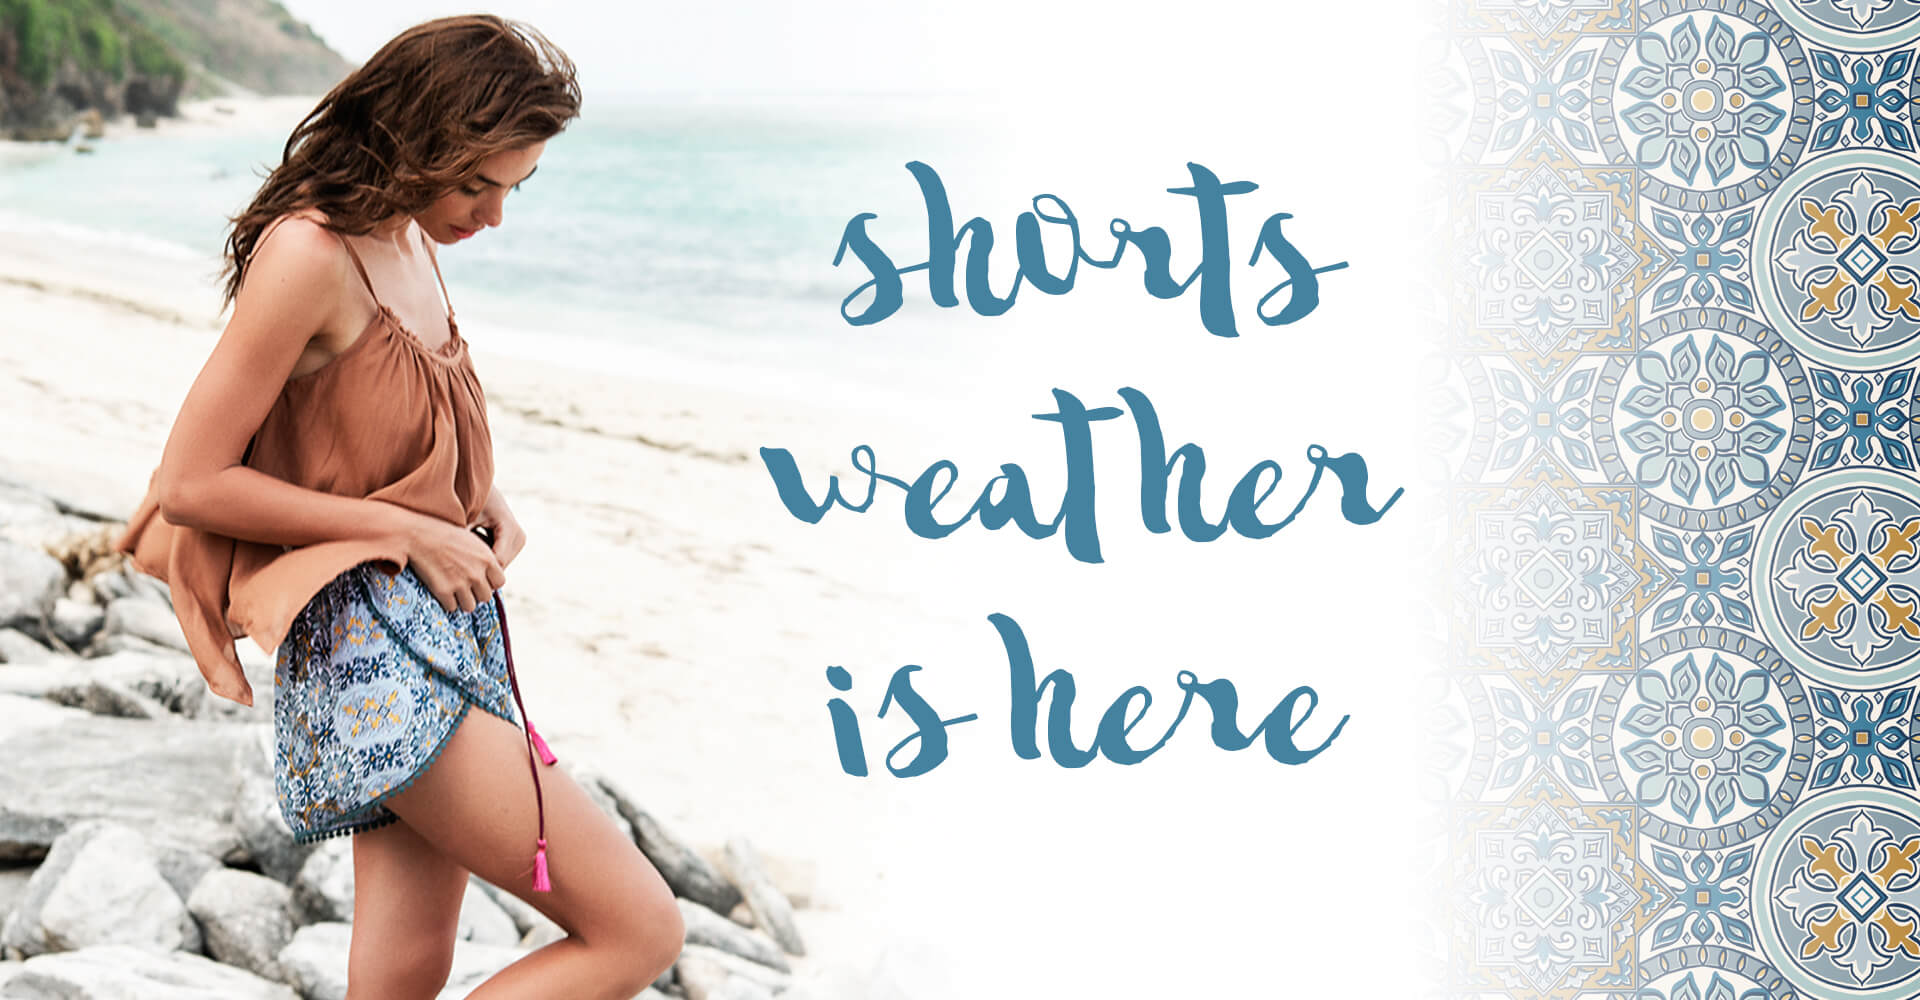 Cobalt and Tawny Shorts Weather is here